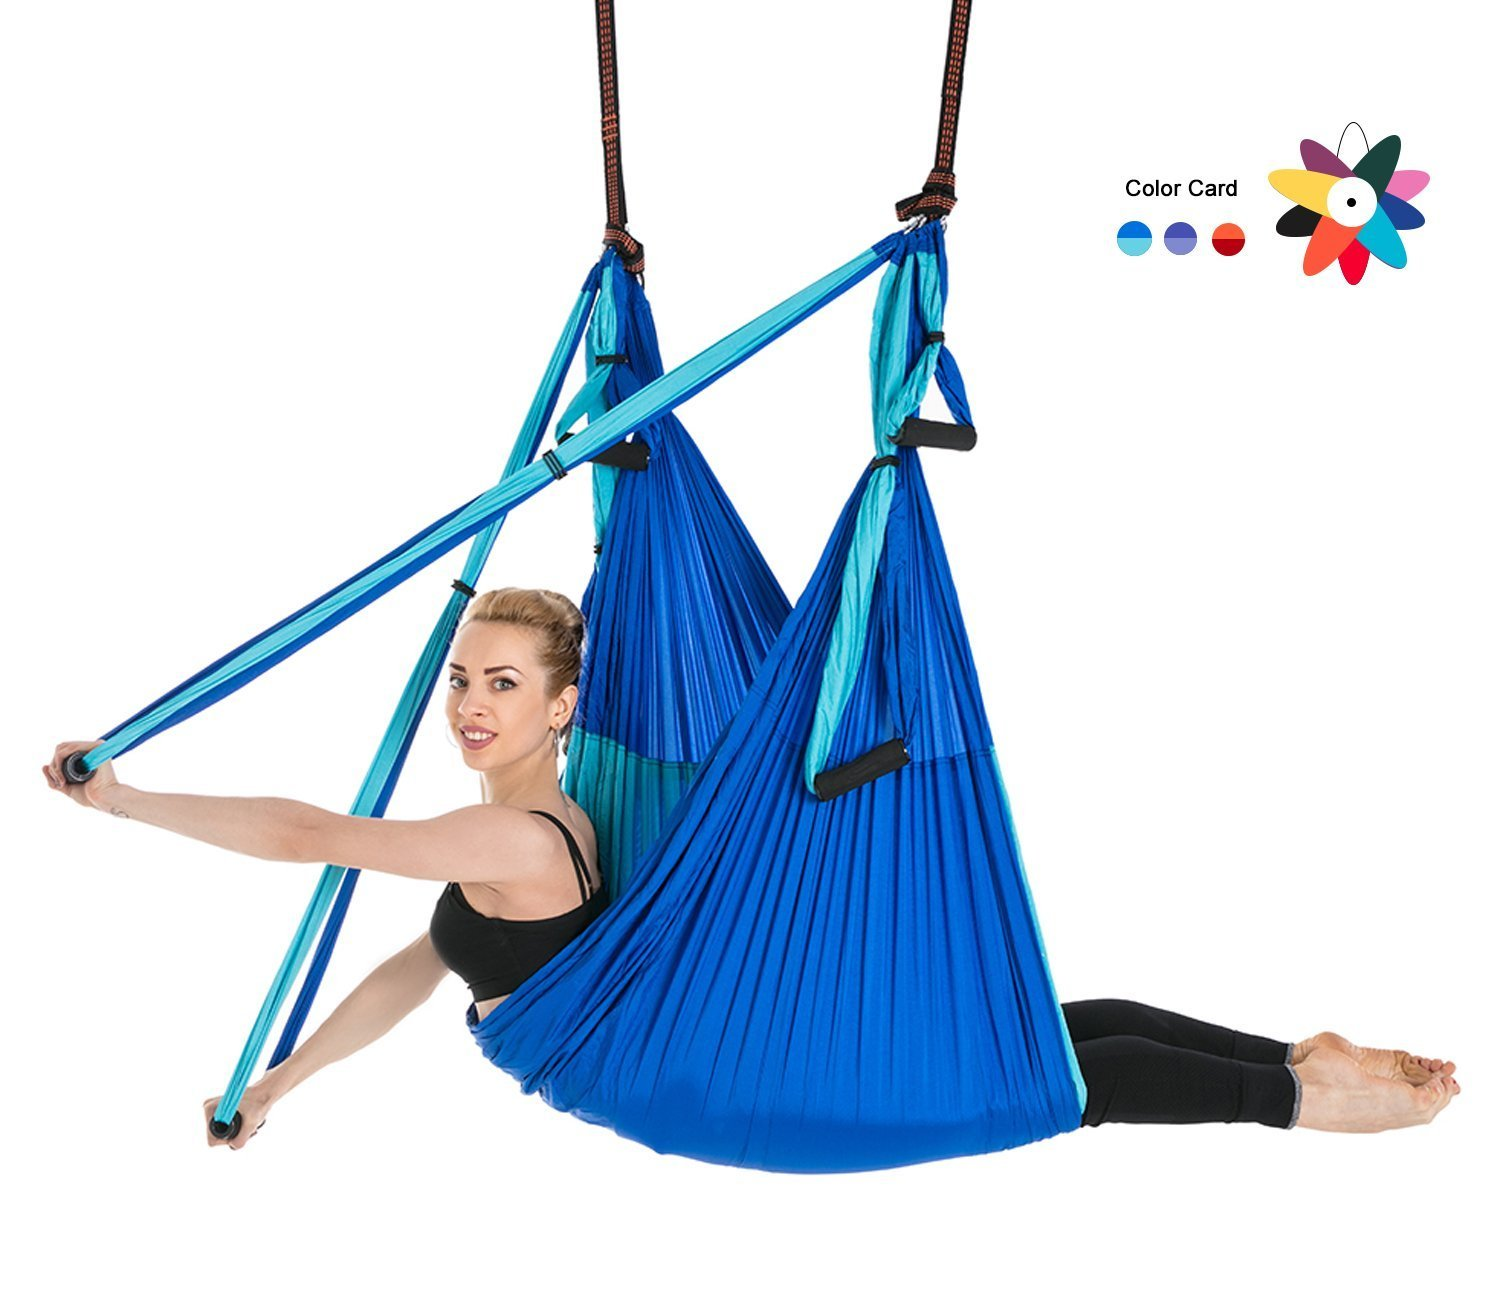 Ranbo Yoga Inversion Swing - Anti-Gravity Aerial Trapeze - Flying Hammock Sling - Relieves Back Pains, Improves your Strength, Balance, Flexibility and Endurance (Darkblue/Blue)